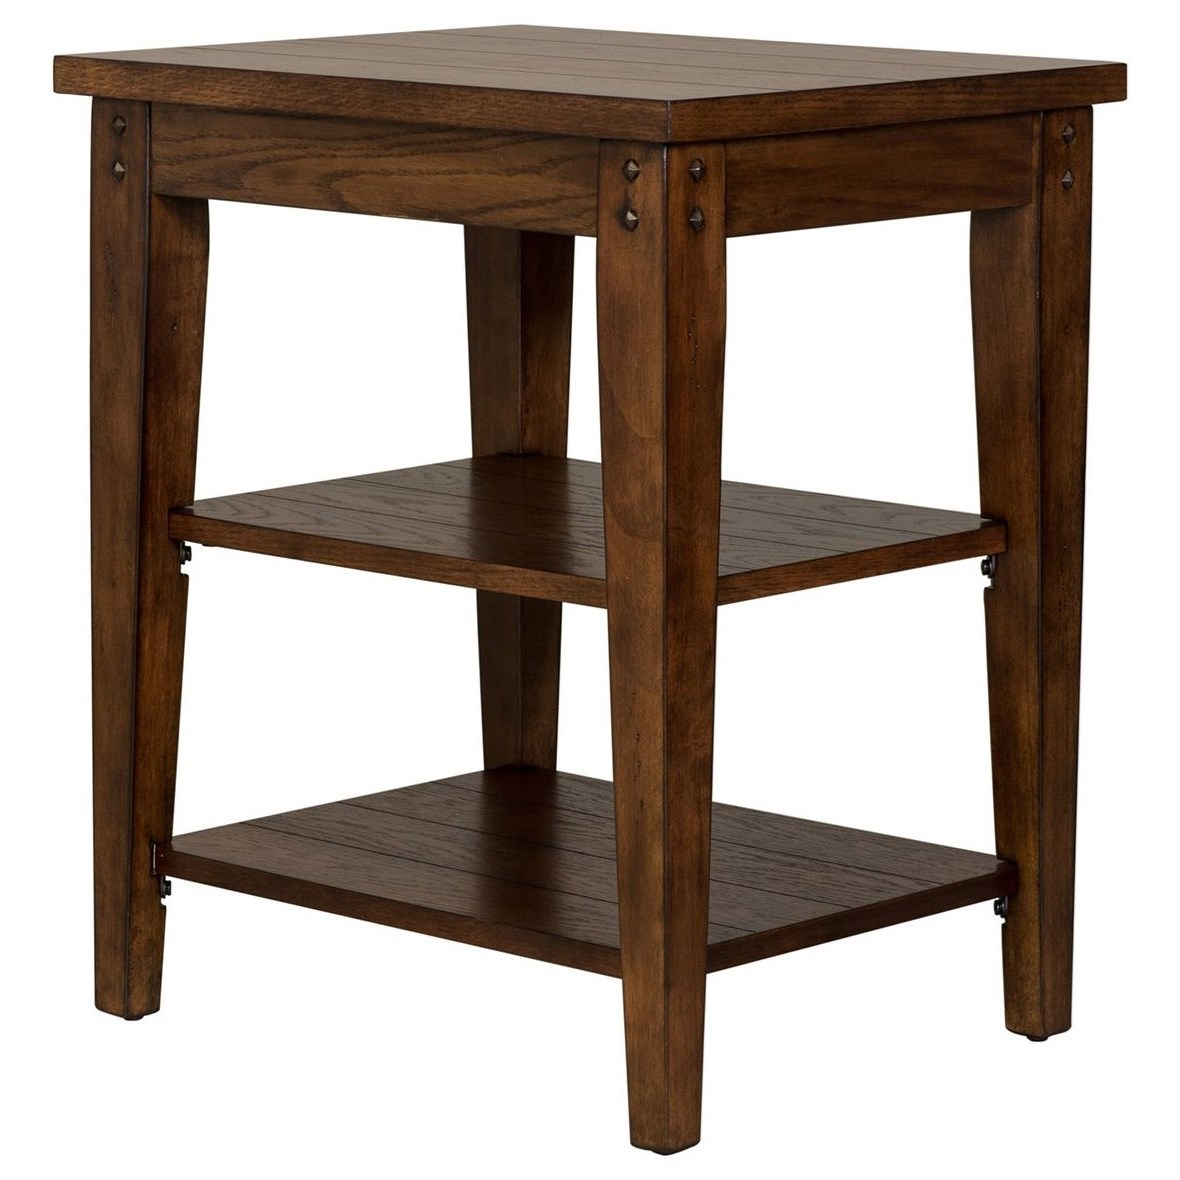 Lake House Tiered Table by Liberty Furniture at Turk Furniture